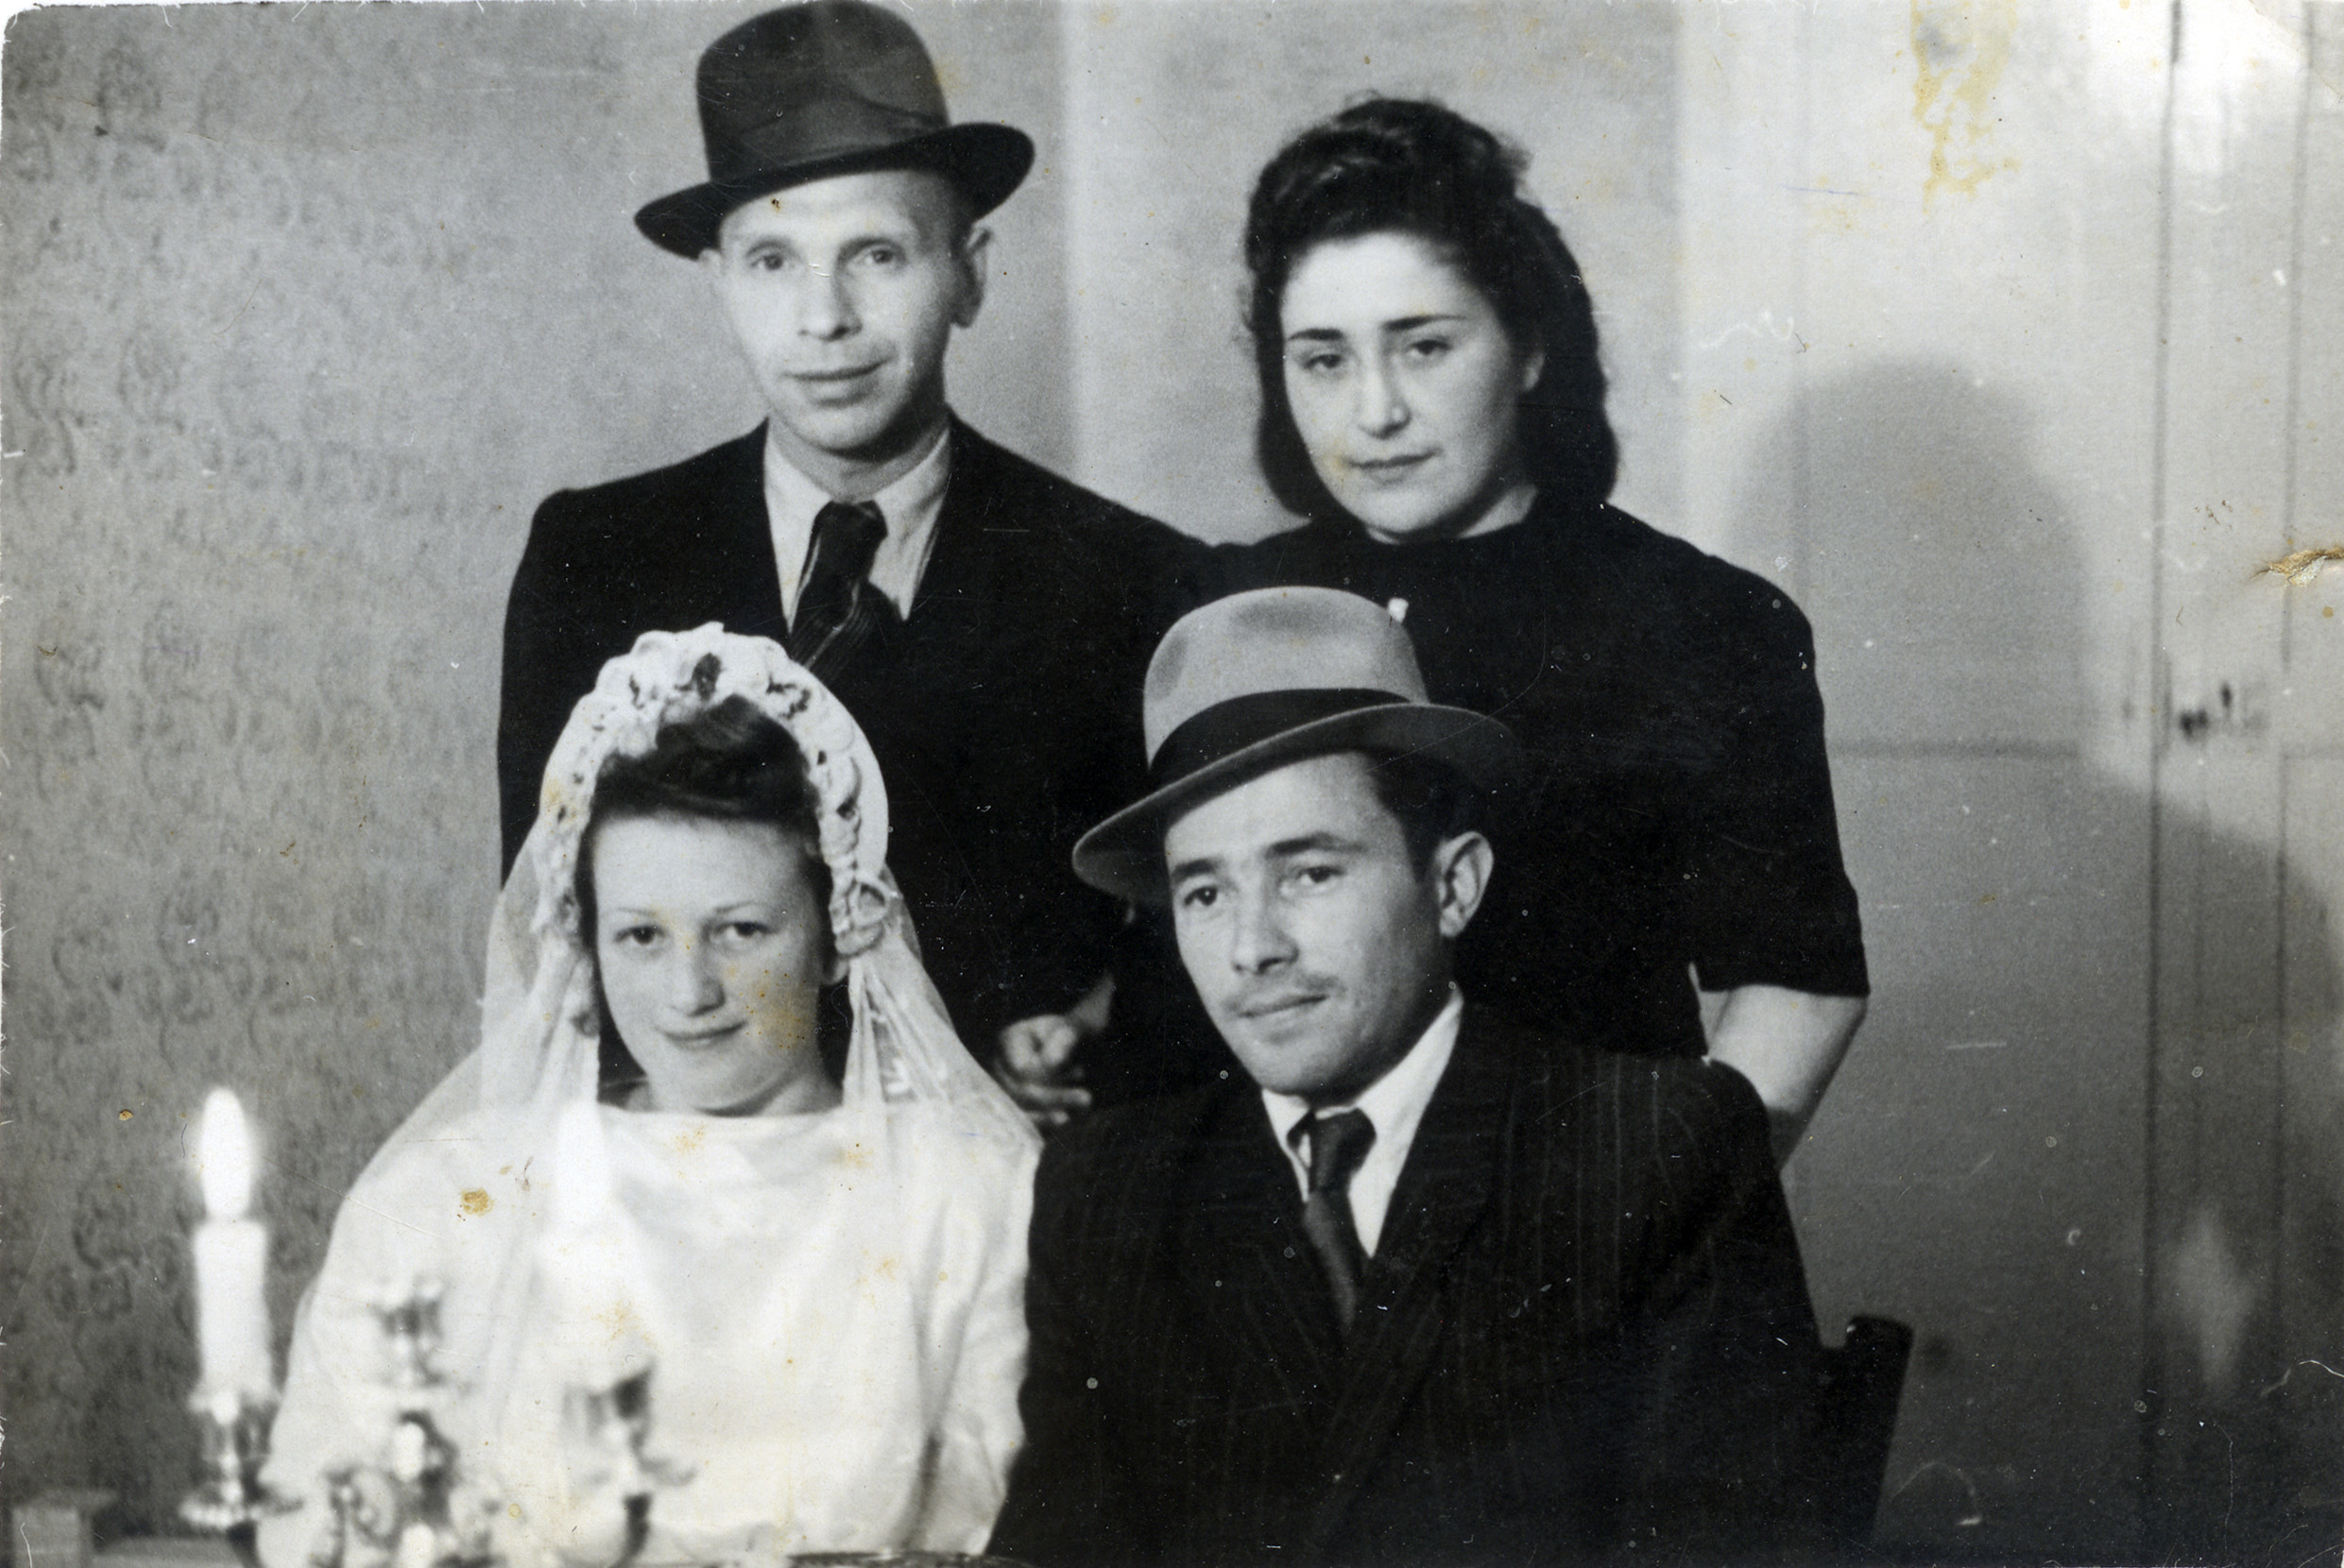 Yehoshua Gold and Shulamit Danishevski attend the wedding of friends [unidentified] in the Dachau displaced persons camp.